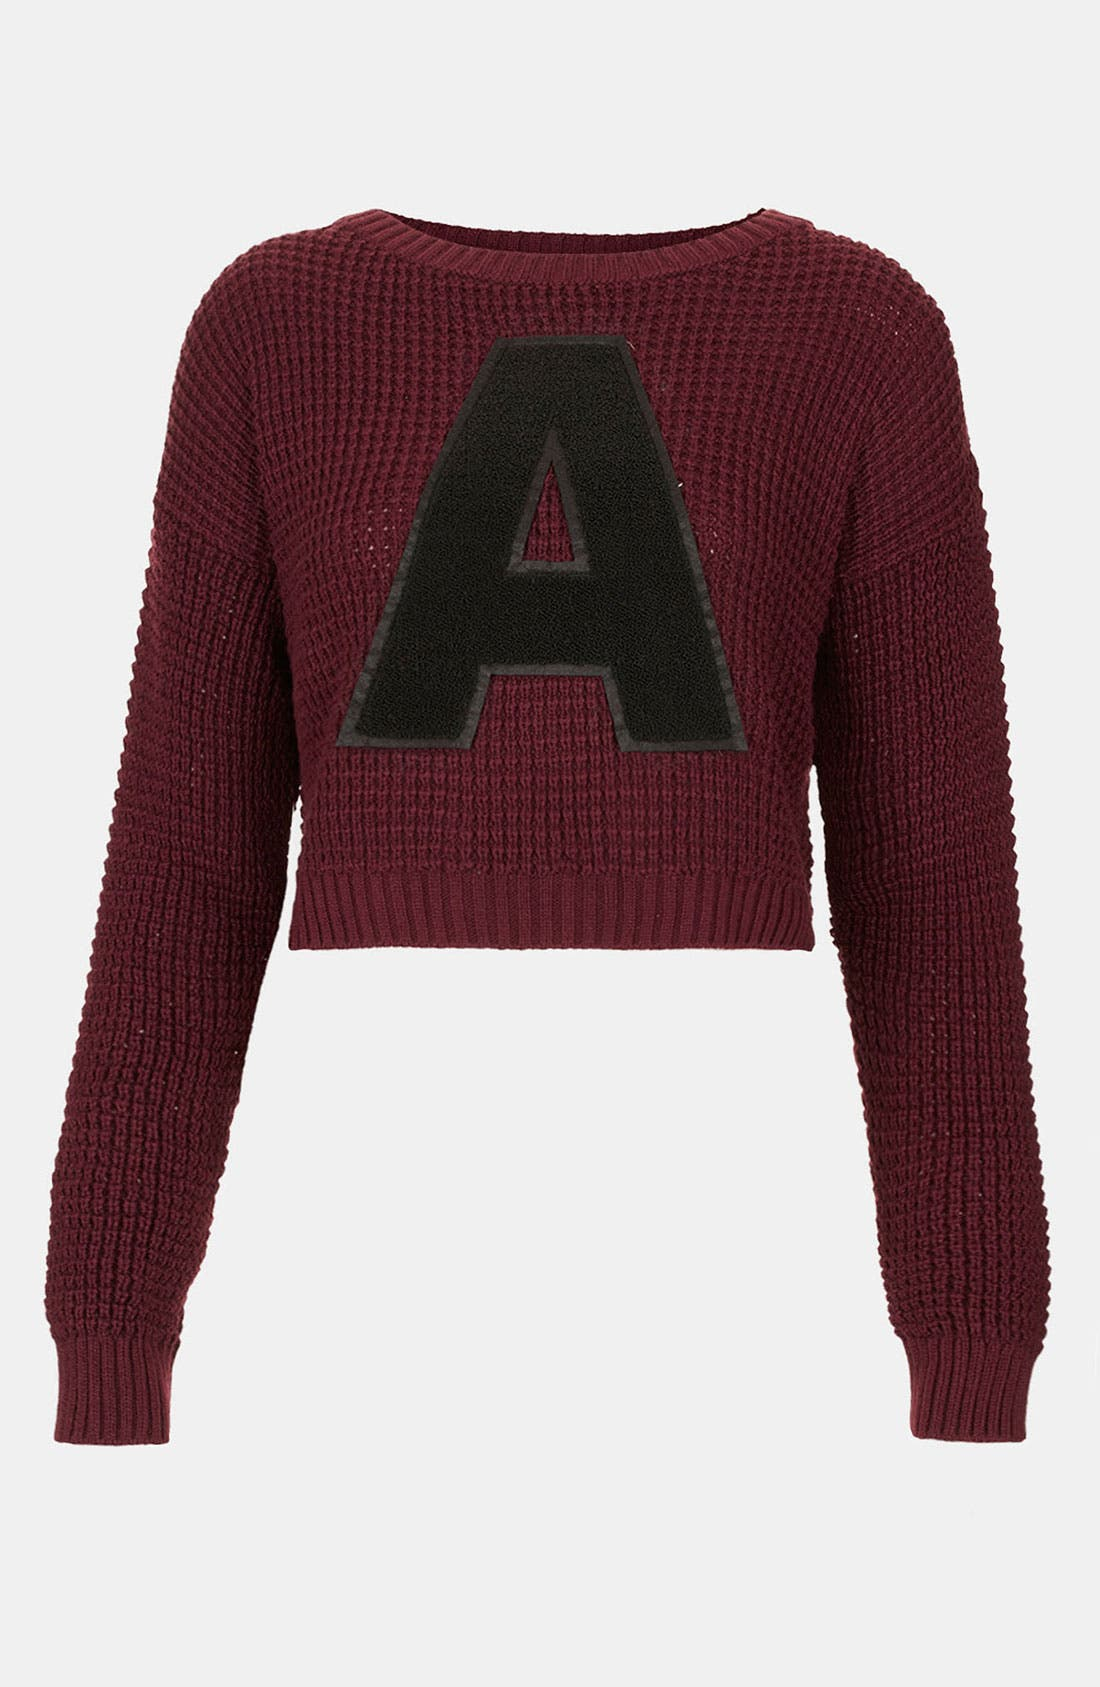 Alternate Image 1 Selected - Topshop 'A' Crop Letter Sweater